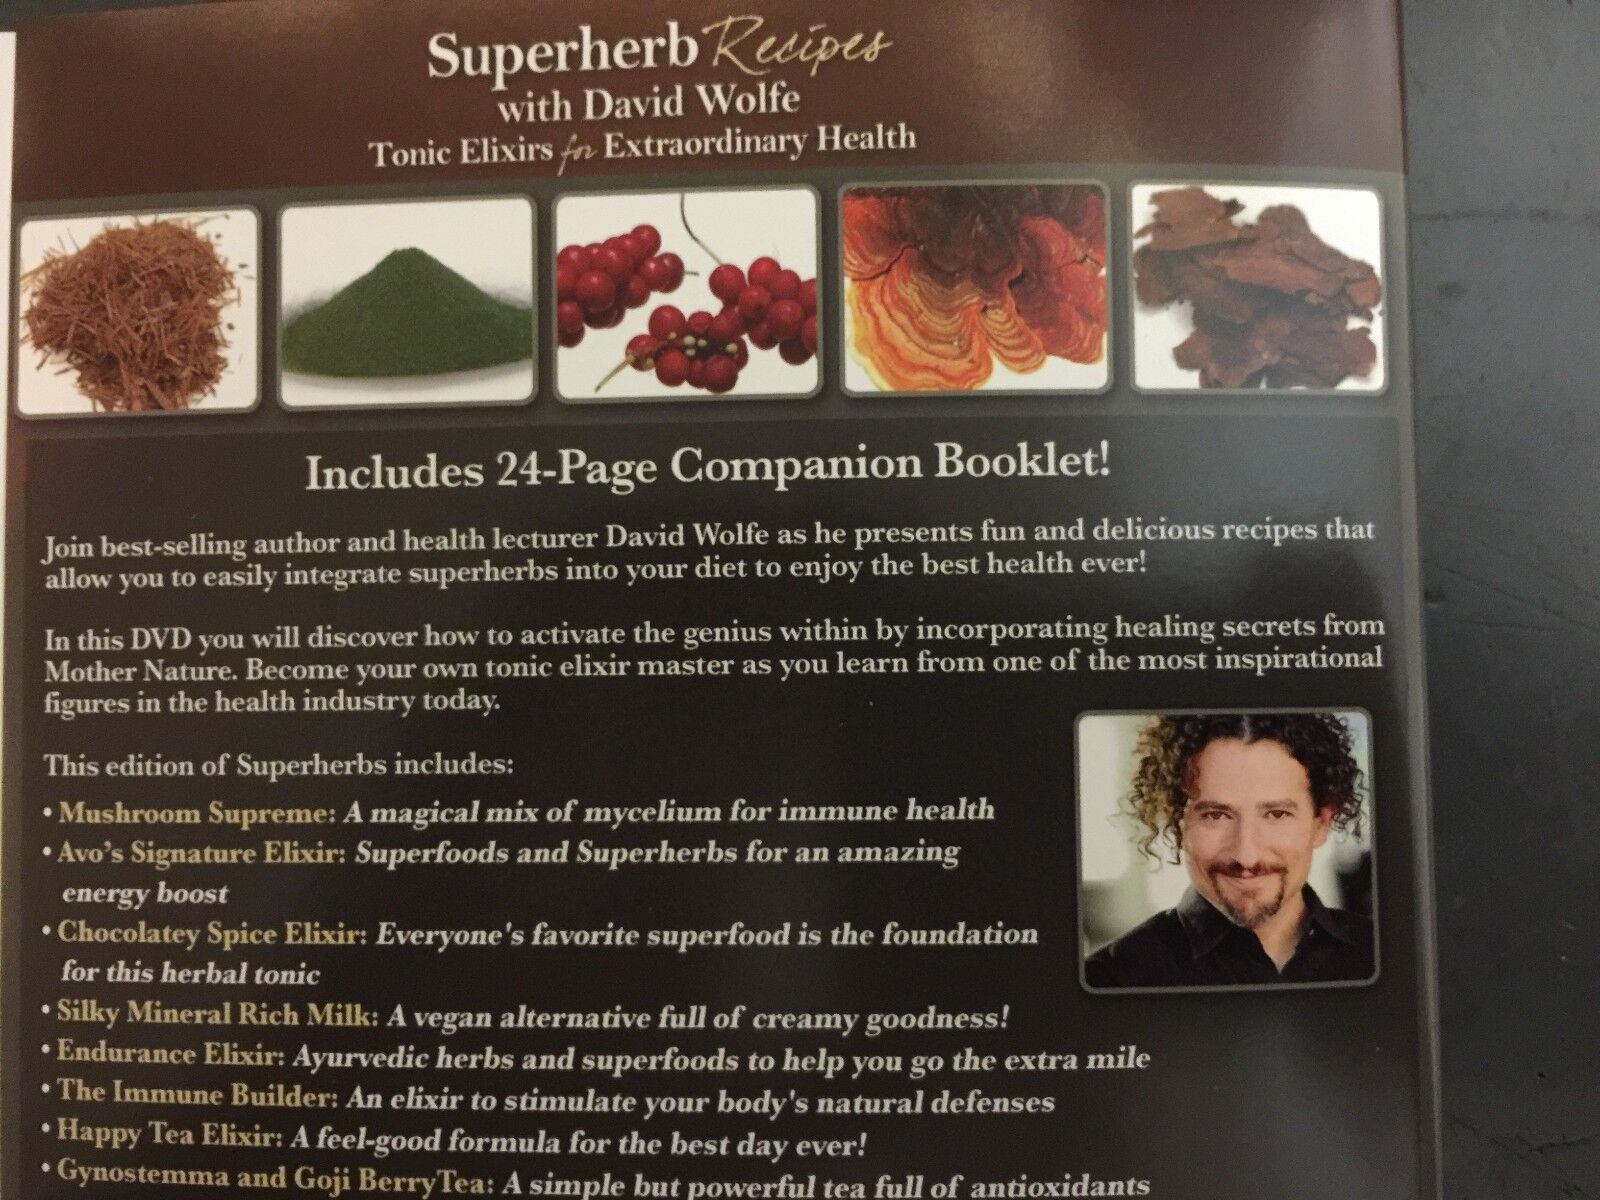 Superherb Recipes With David Wolfe Tonic Elixirs For Extraordinary Health Dvd For Sale Online Ebay